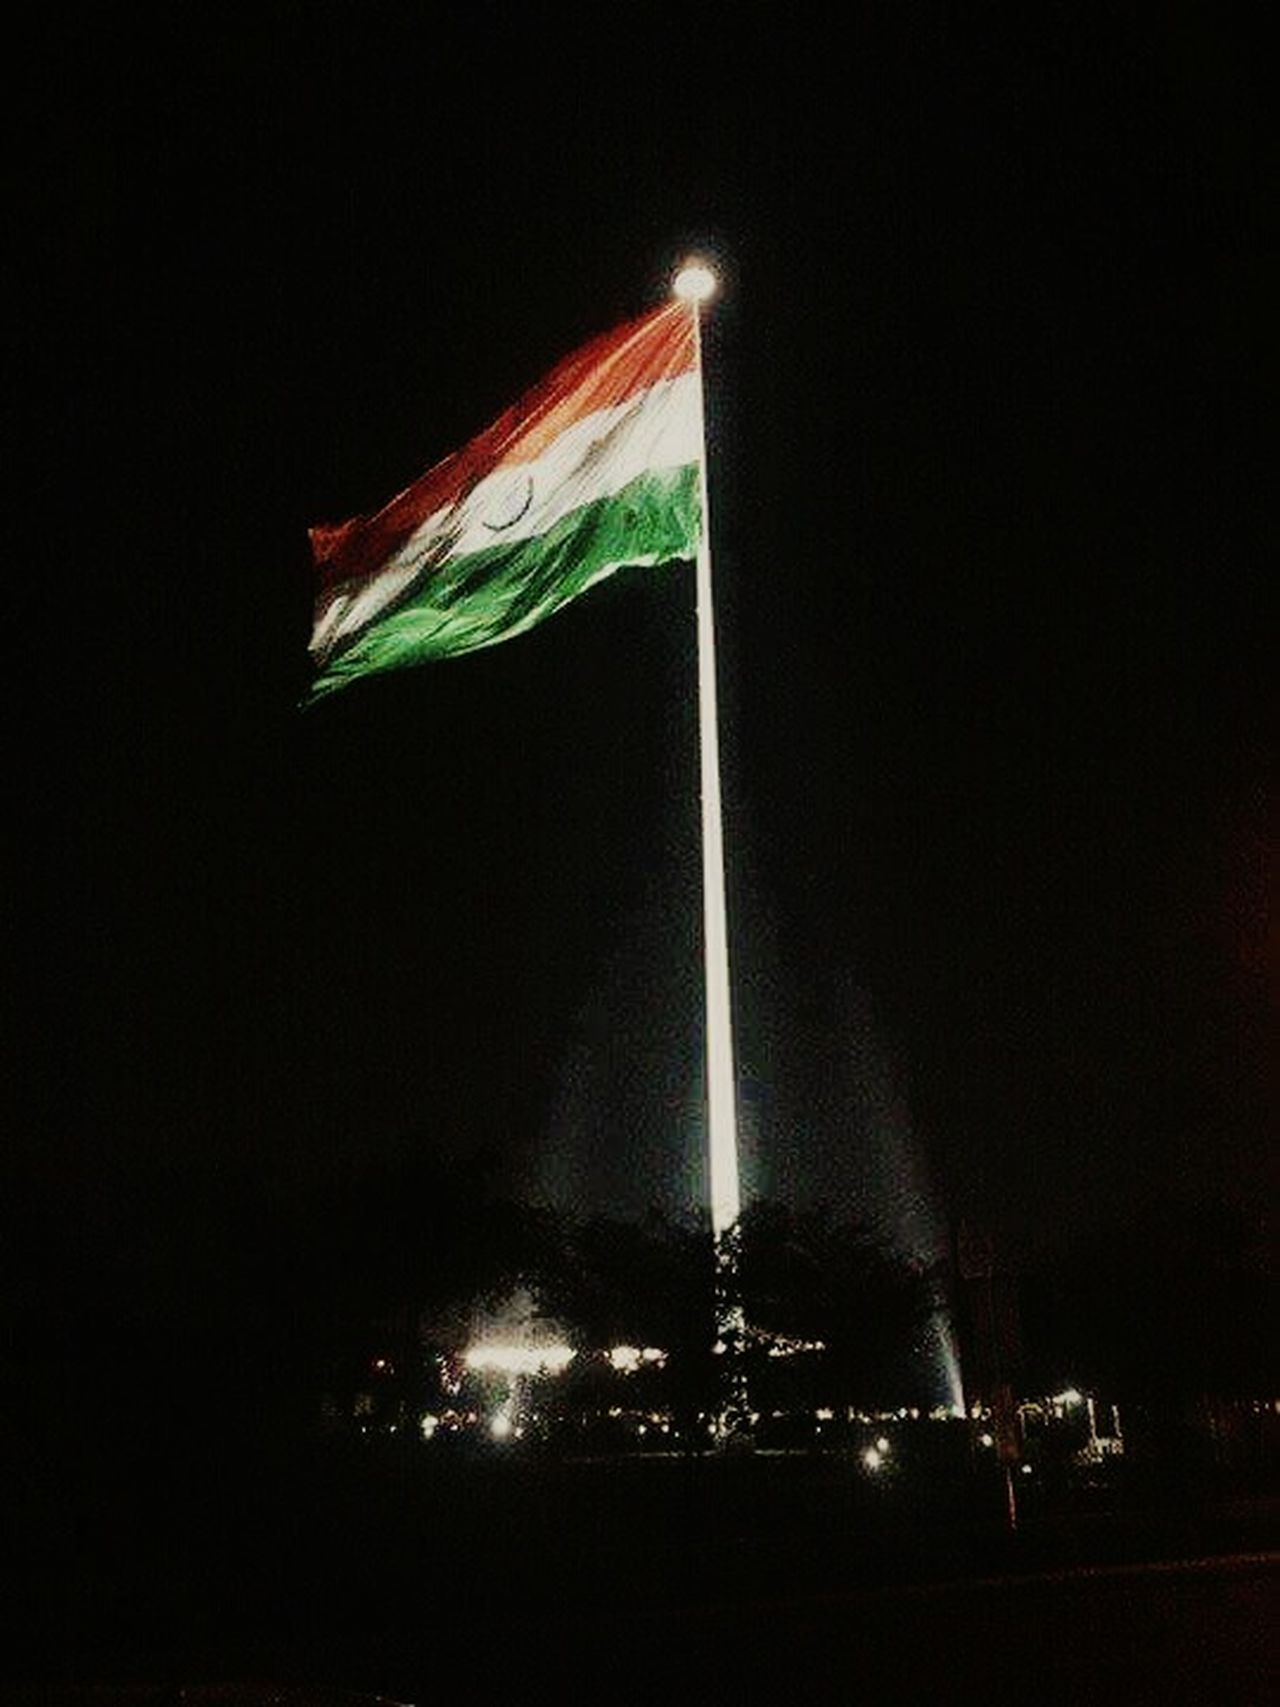 Flag Low Angle View No People Night Outdoors Sky Best EyeEm Shot Best Of EyeEm New Talents EyeEmNewHere Flag Pole Indian India New Talent This Week Welcome To Black Indianphotography Office Building Exterior Latest Pic. Low Angle View Welcome To My Eyeem Long Goodbye Welcome To Black